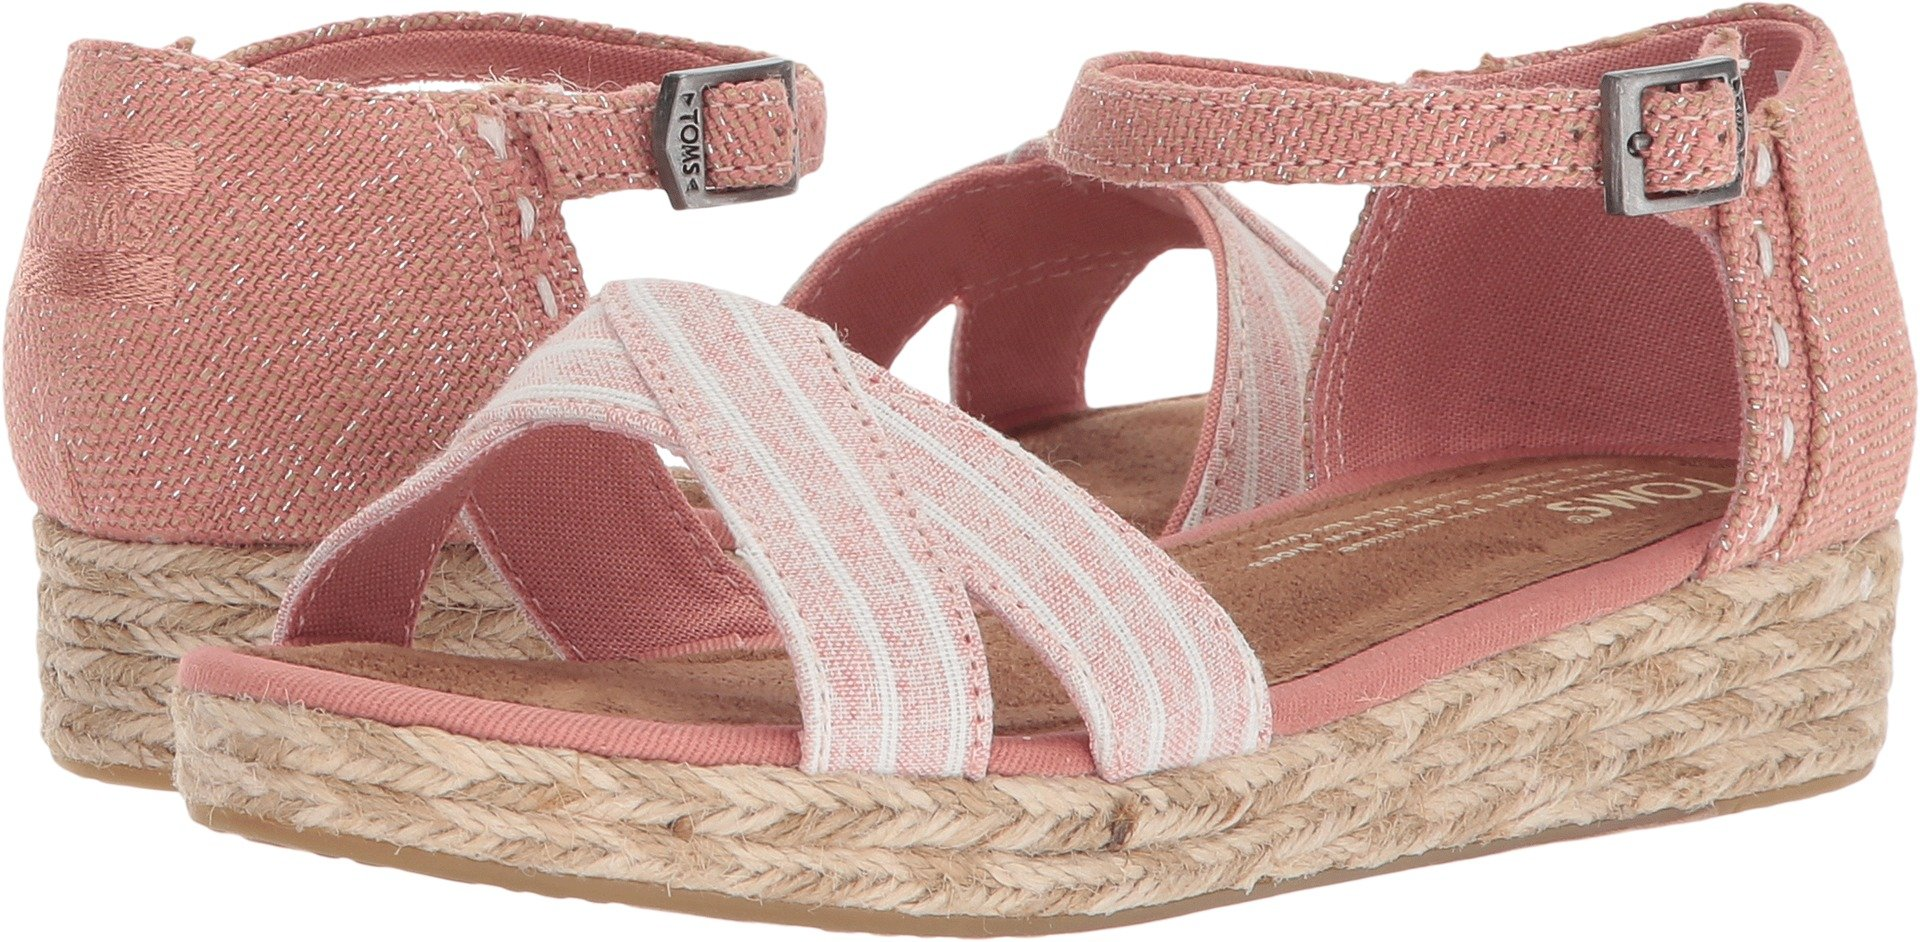 TOMS Youth Harper Novelty Textile Wedge, Size: 5 M US Big Kid, Color Bloom Chambray Stripe